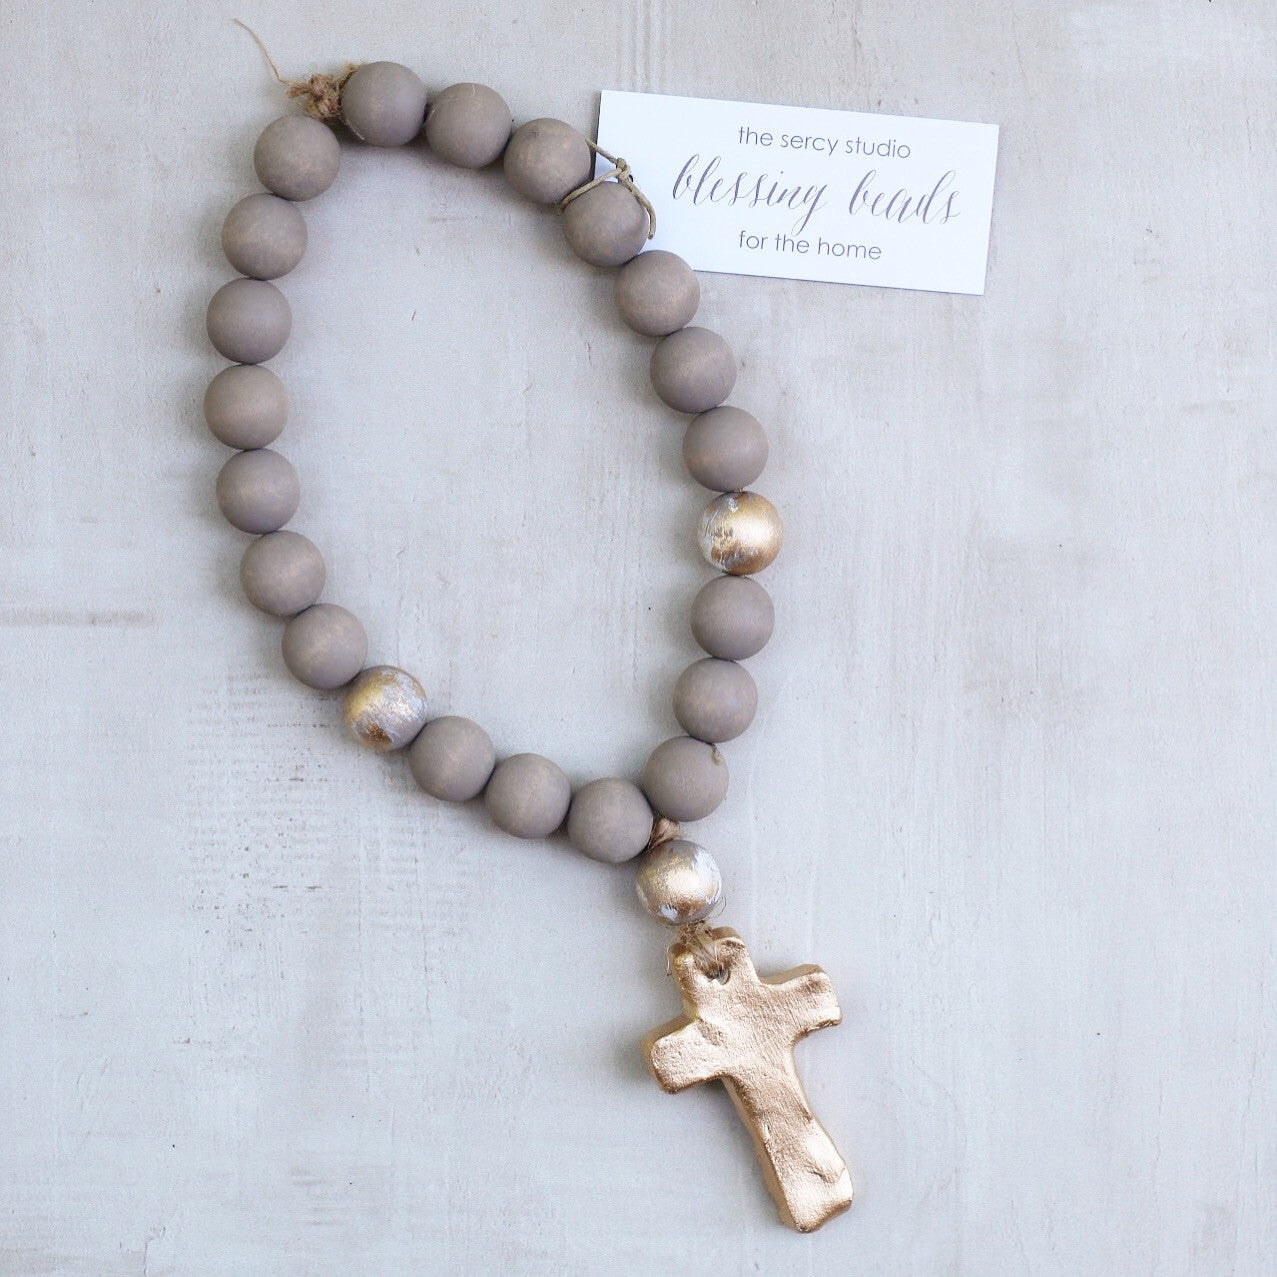 GRAY SMALL BLESSING BEADS